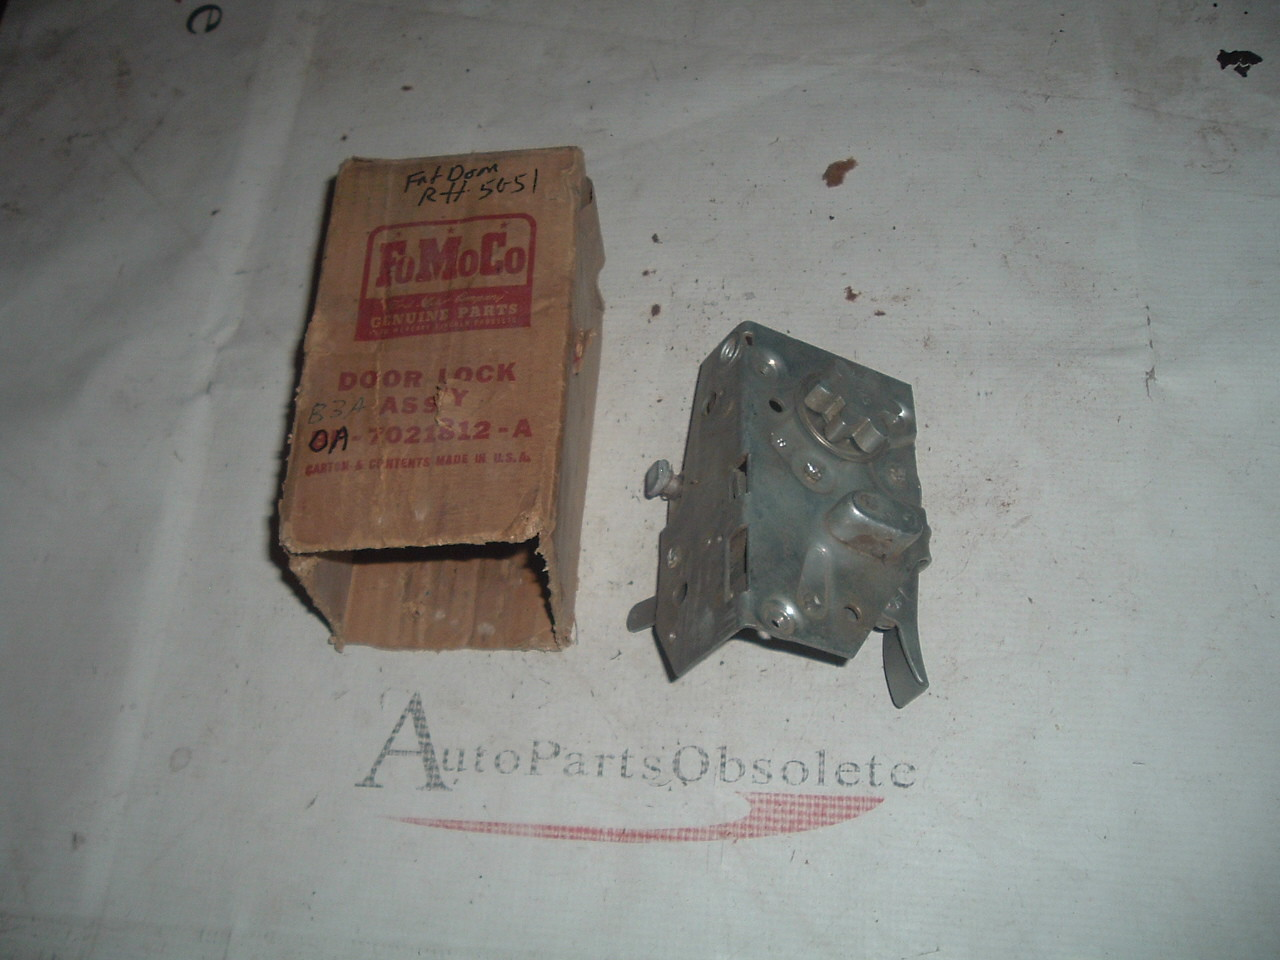 1950 51 ford door lock / latch nos ford # 0A-7021812-A (z 0a7021812a)